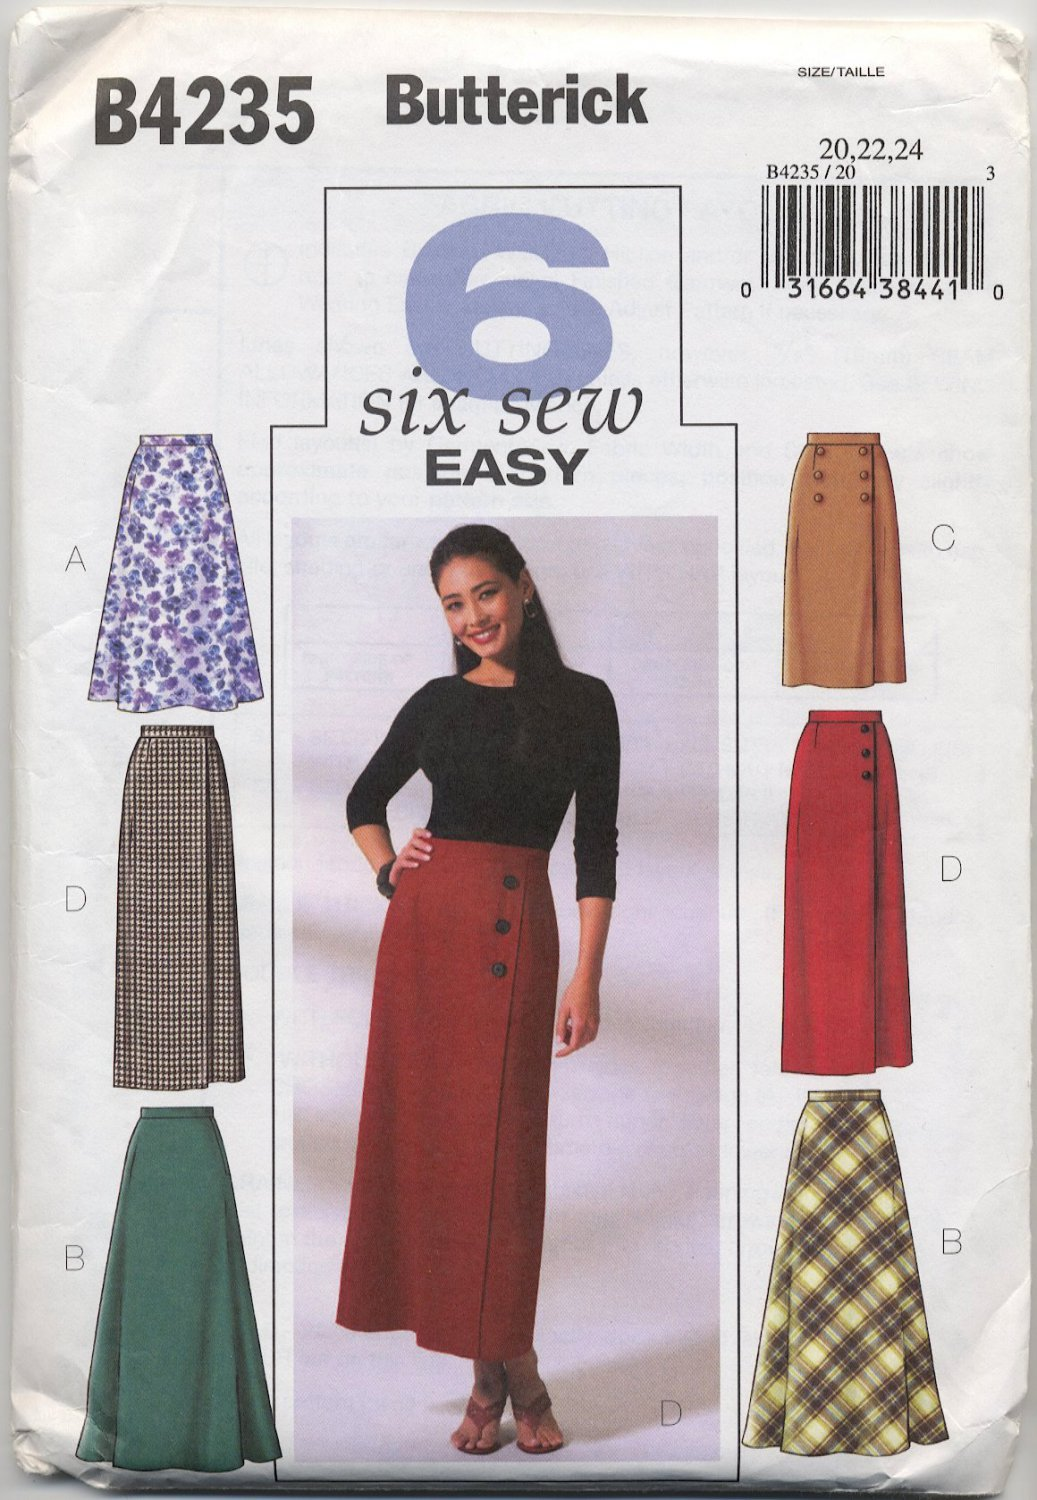 Butterick 4235 Six Skirts Easy Sewing Pattern Misses' 20 22 24 Chic All Season Staple